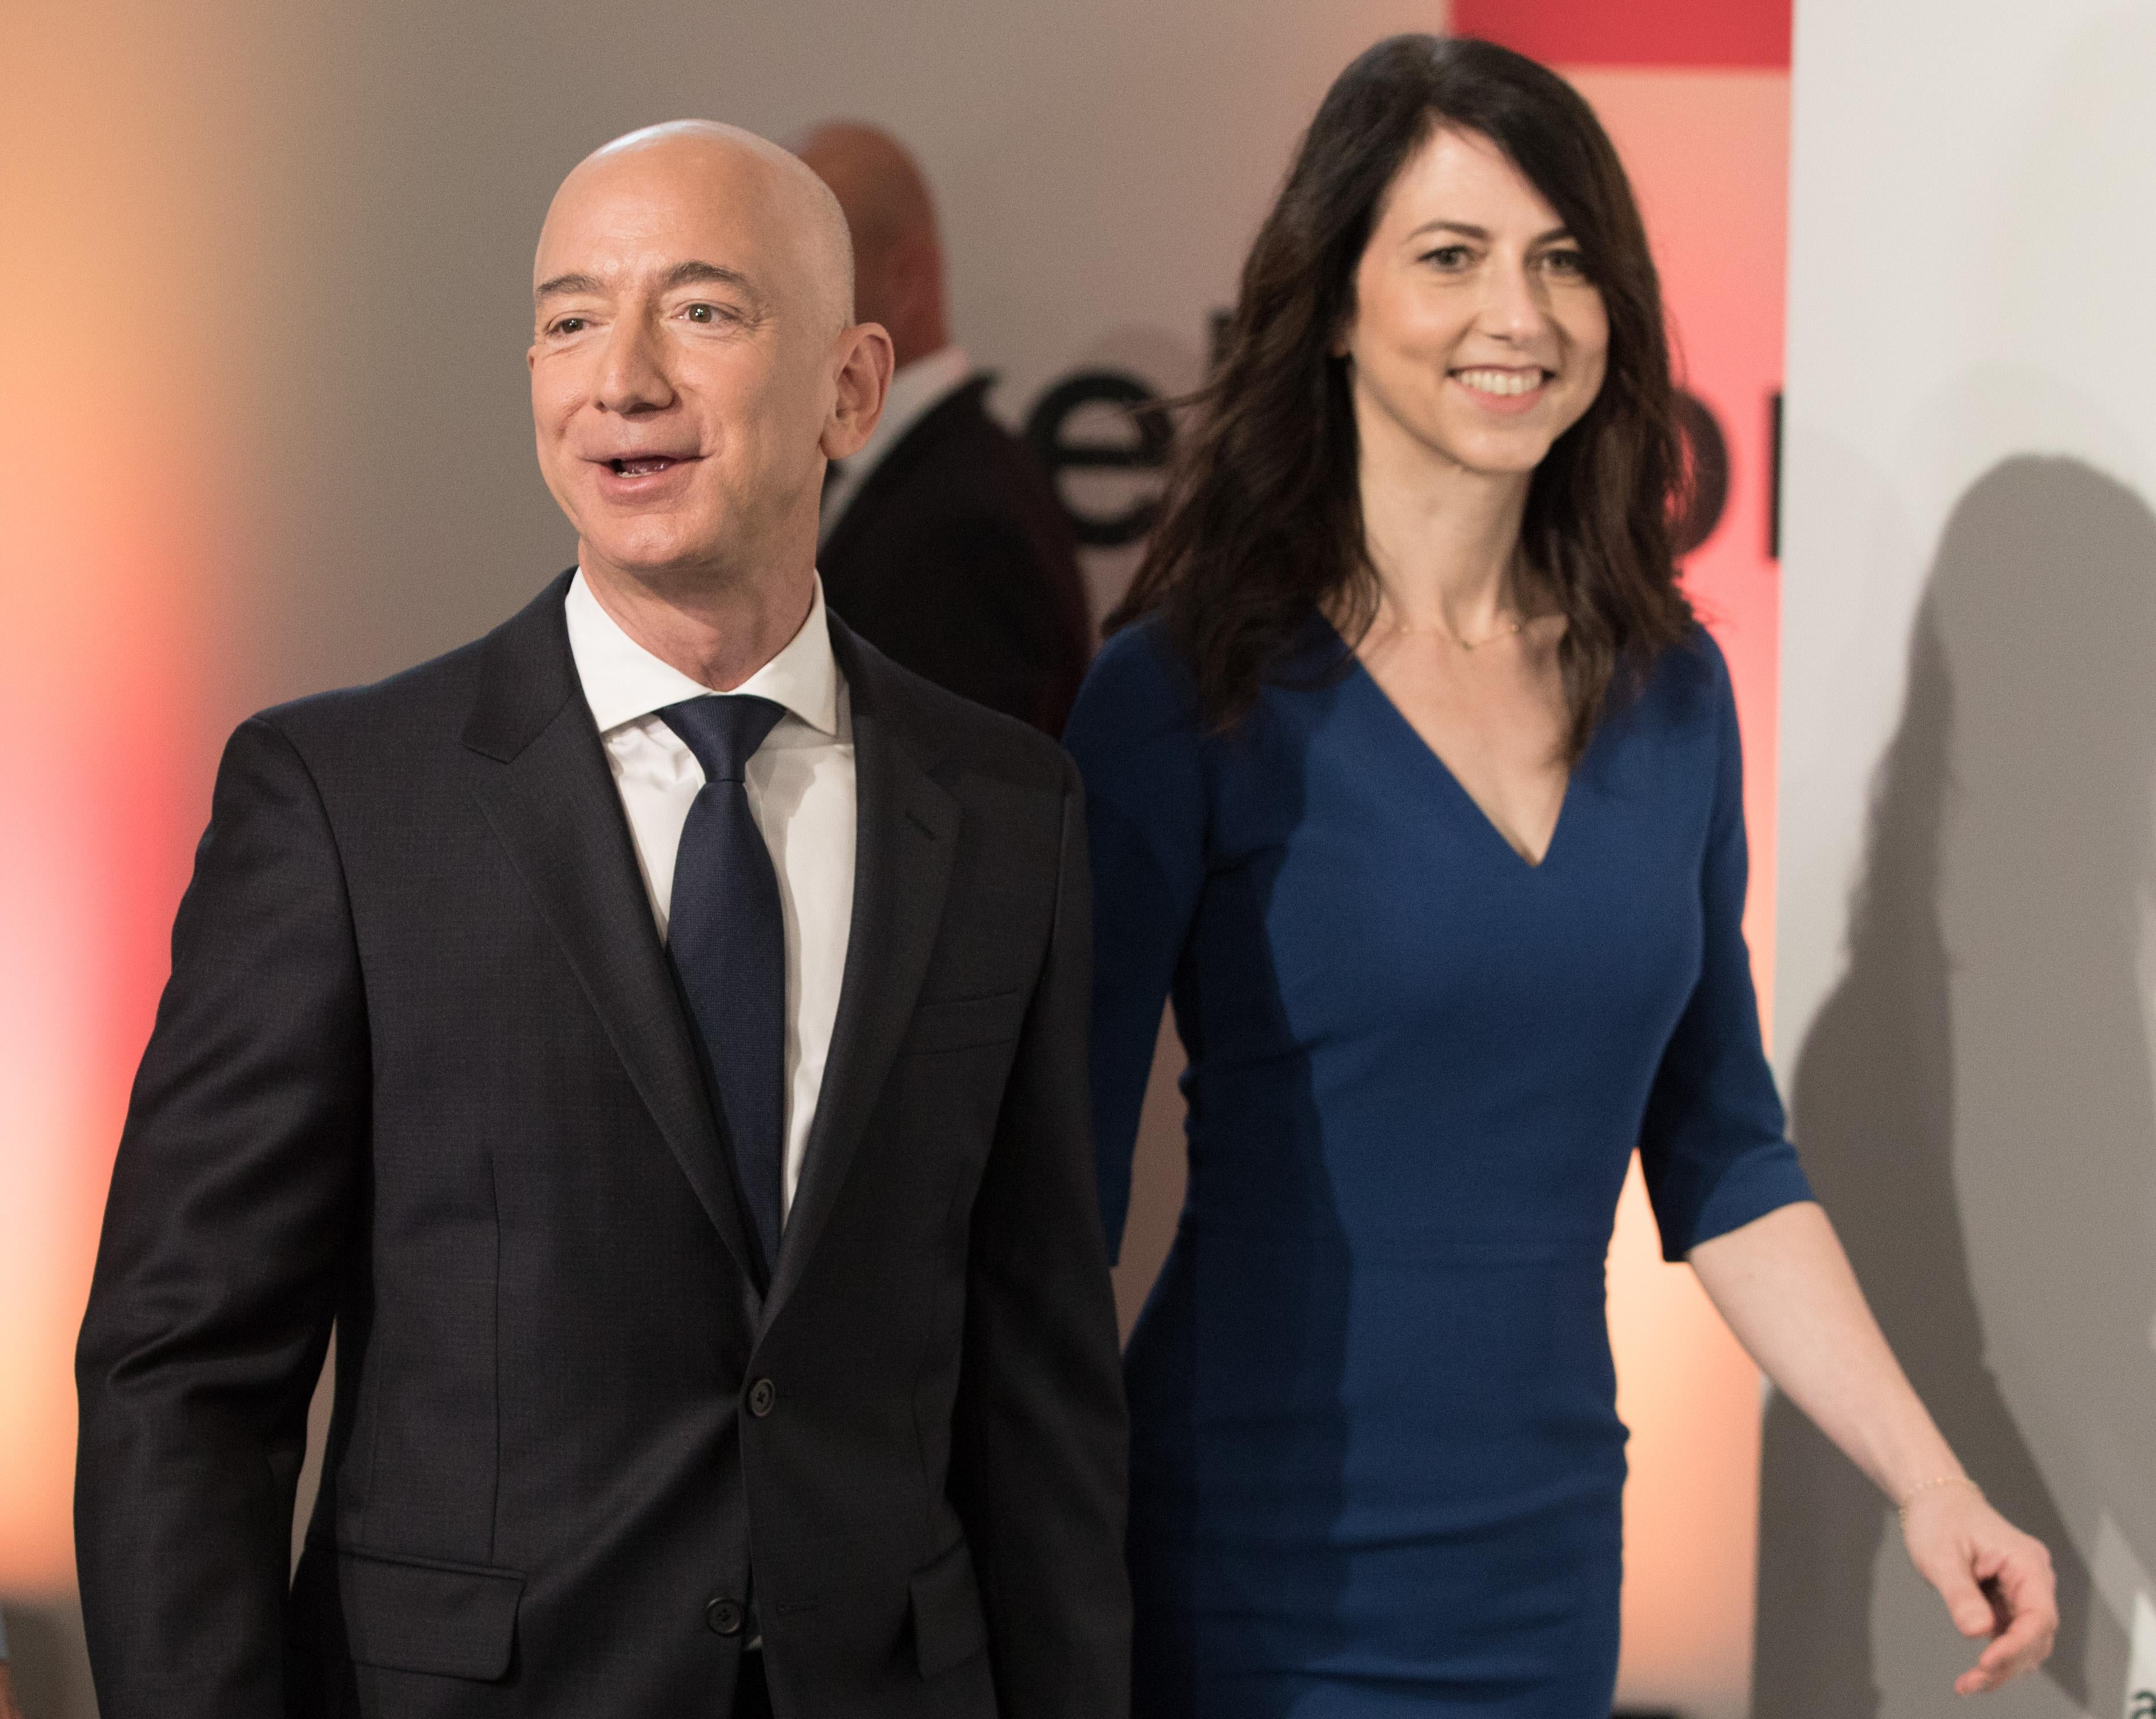 Amazon CEO Jeff Bezos and his wife MacKenzie Bezos arrive at an event.